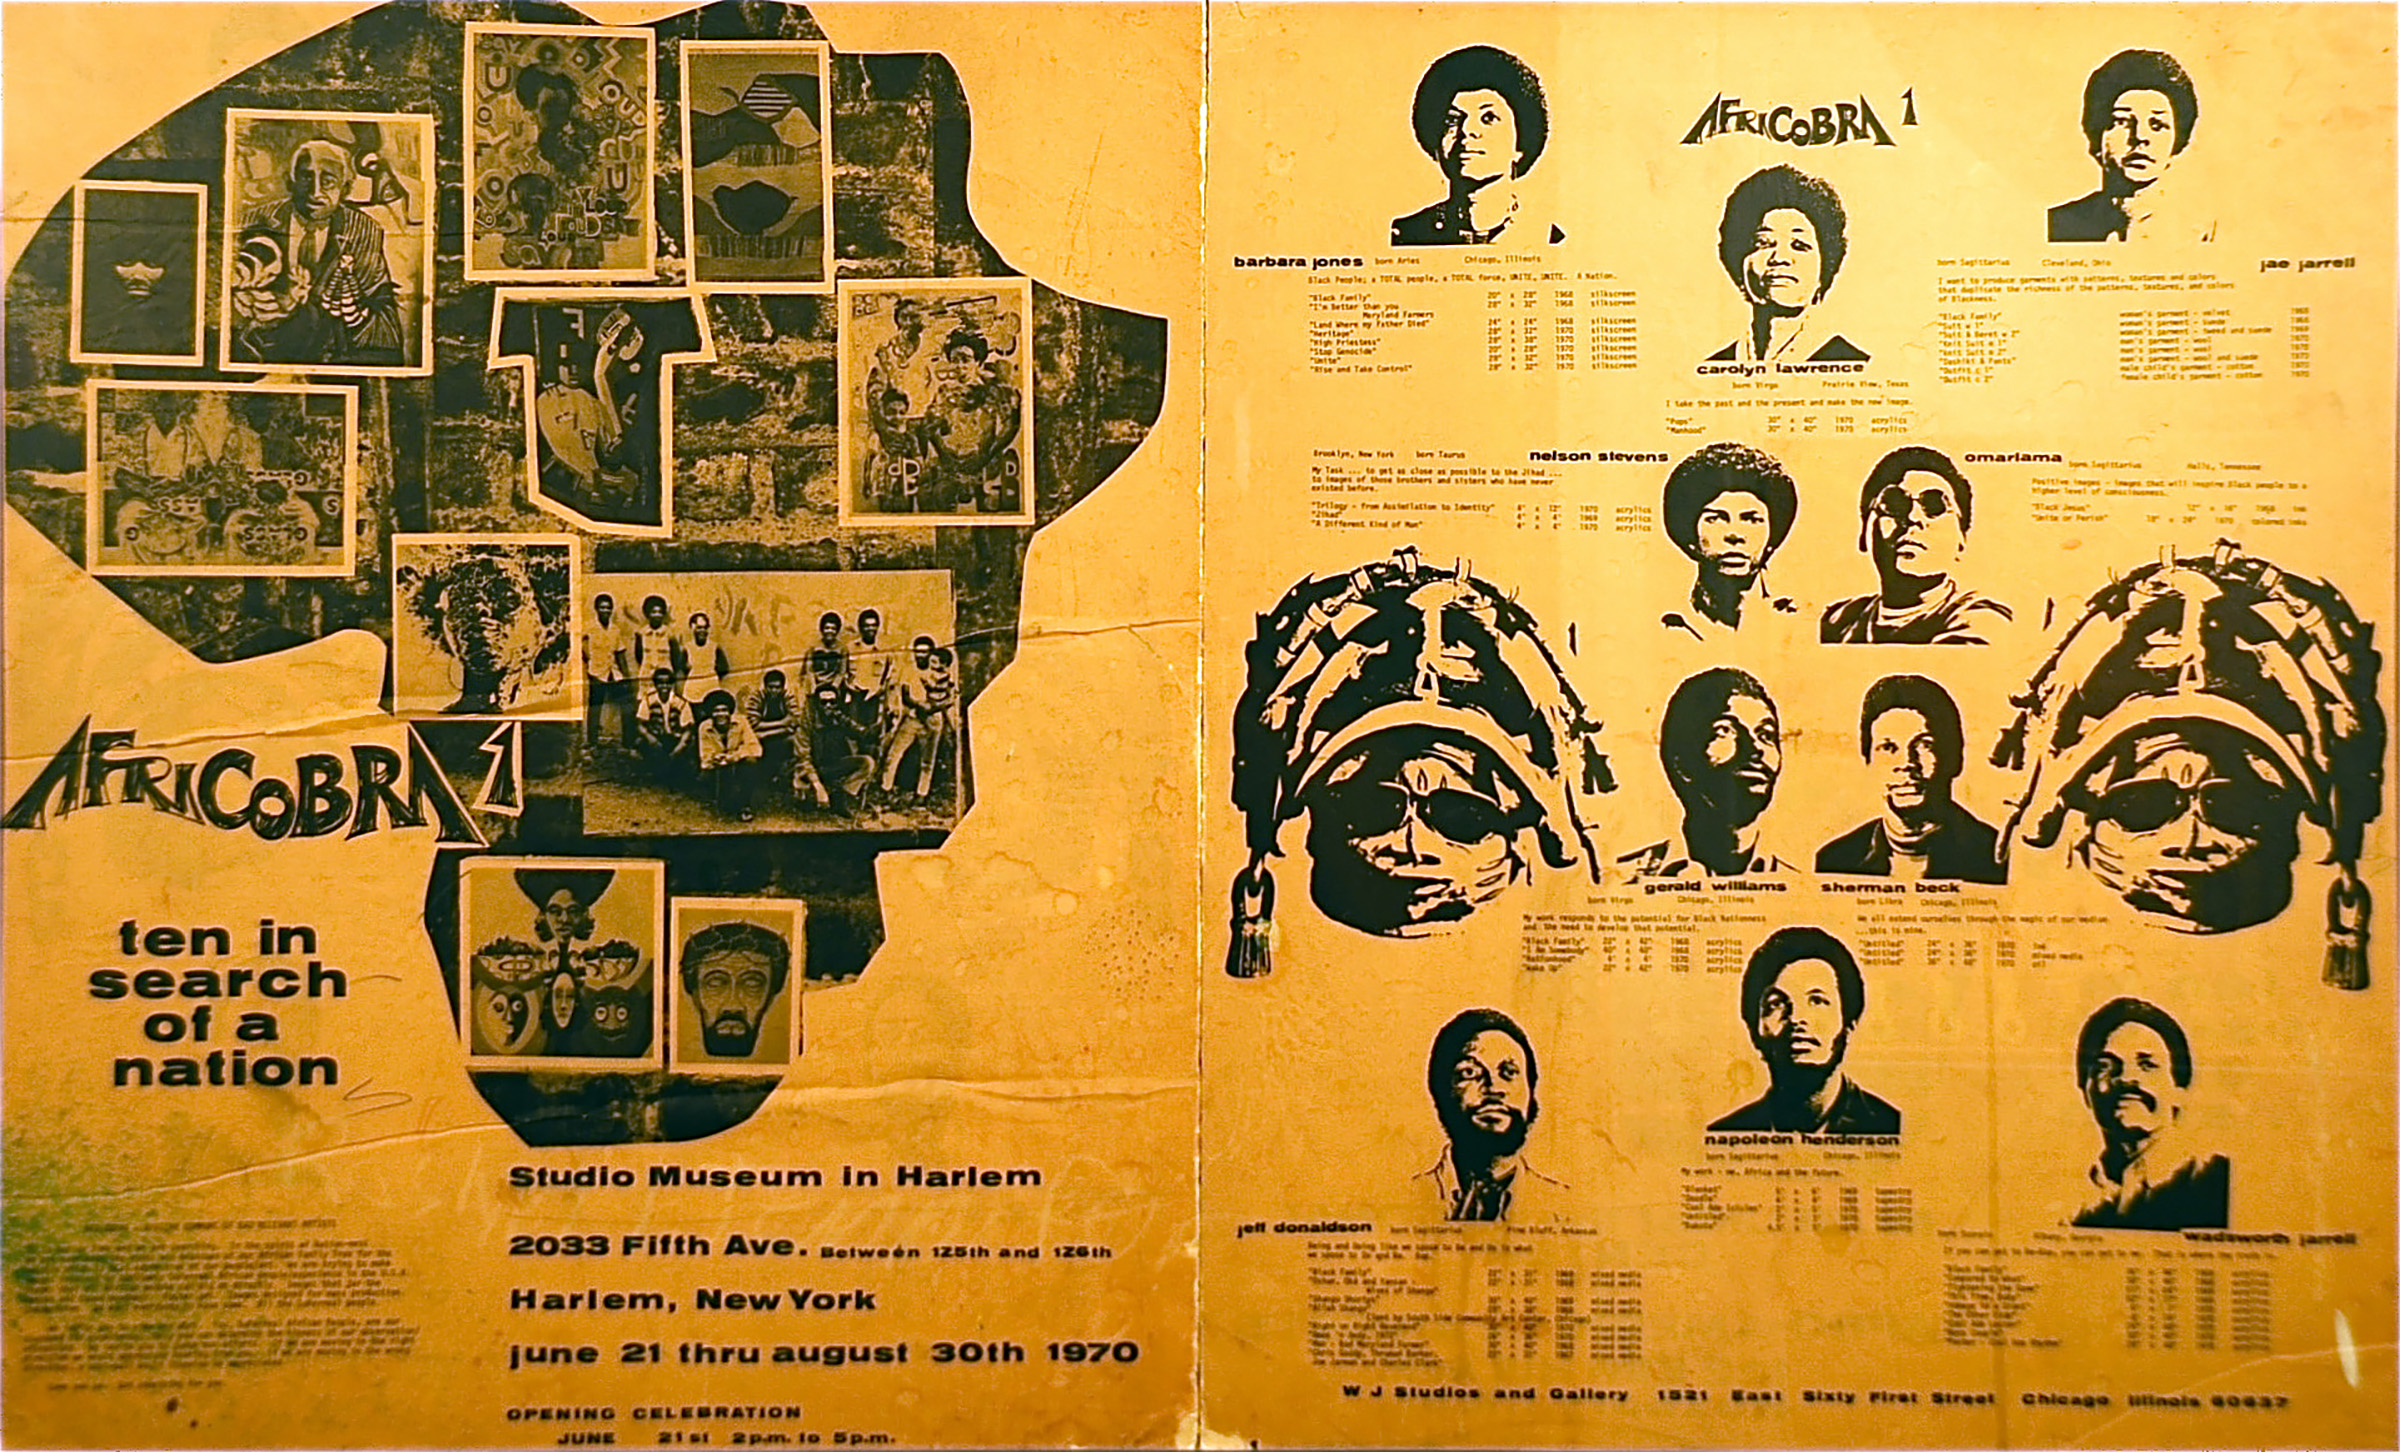 Here is the original poster for the  ten in search of a nation  exhibition.